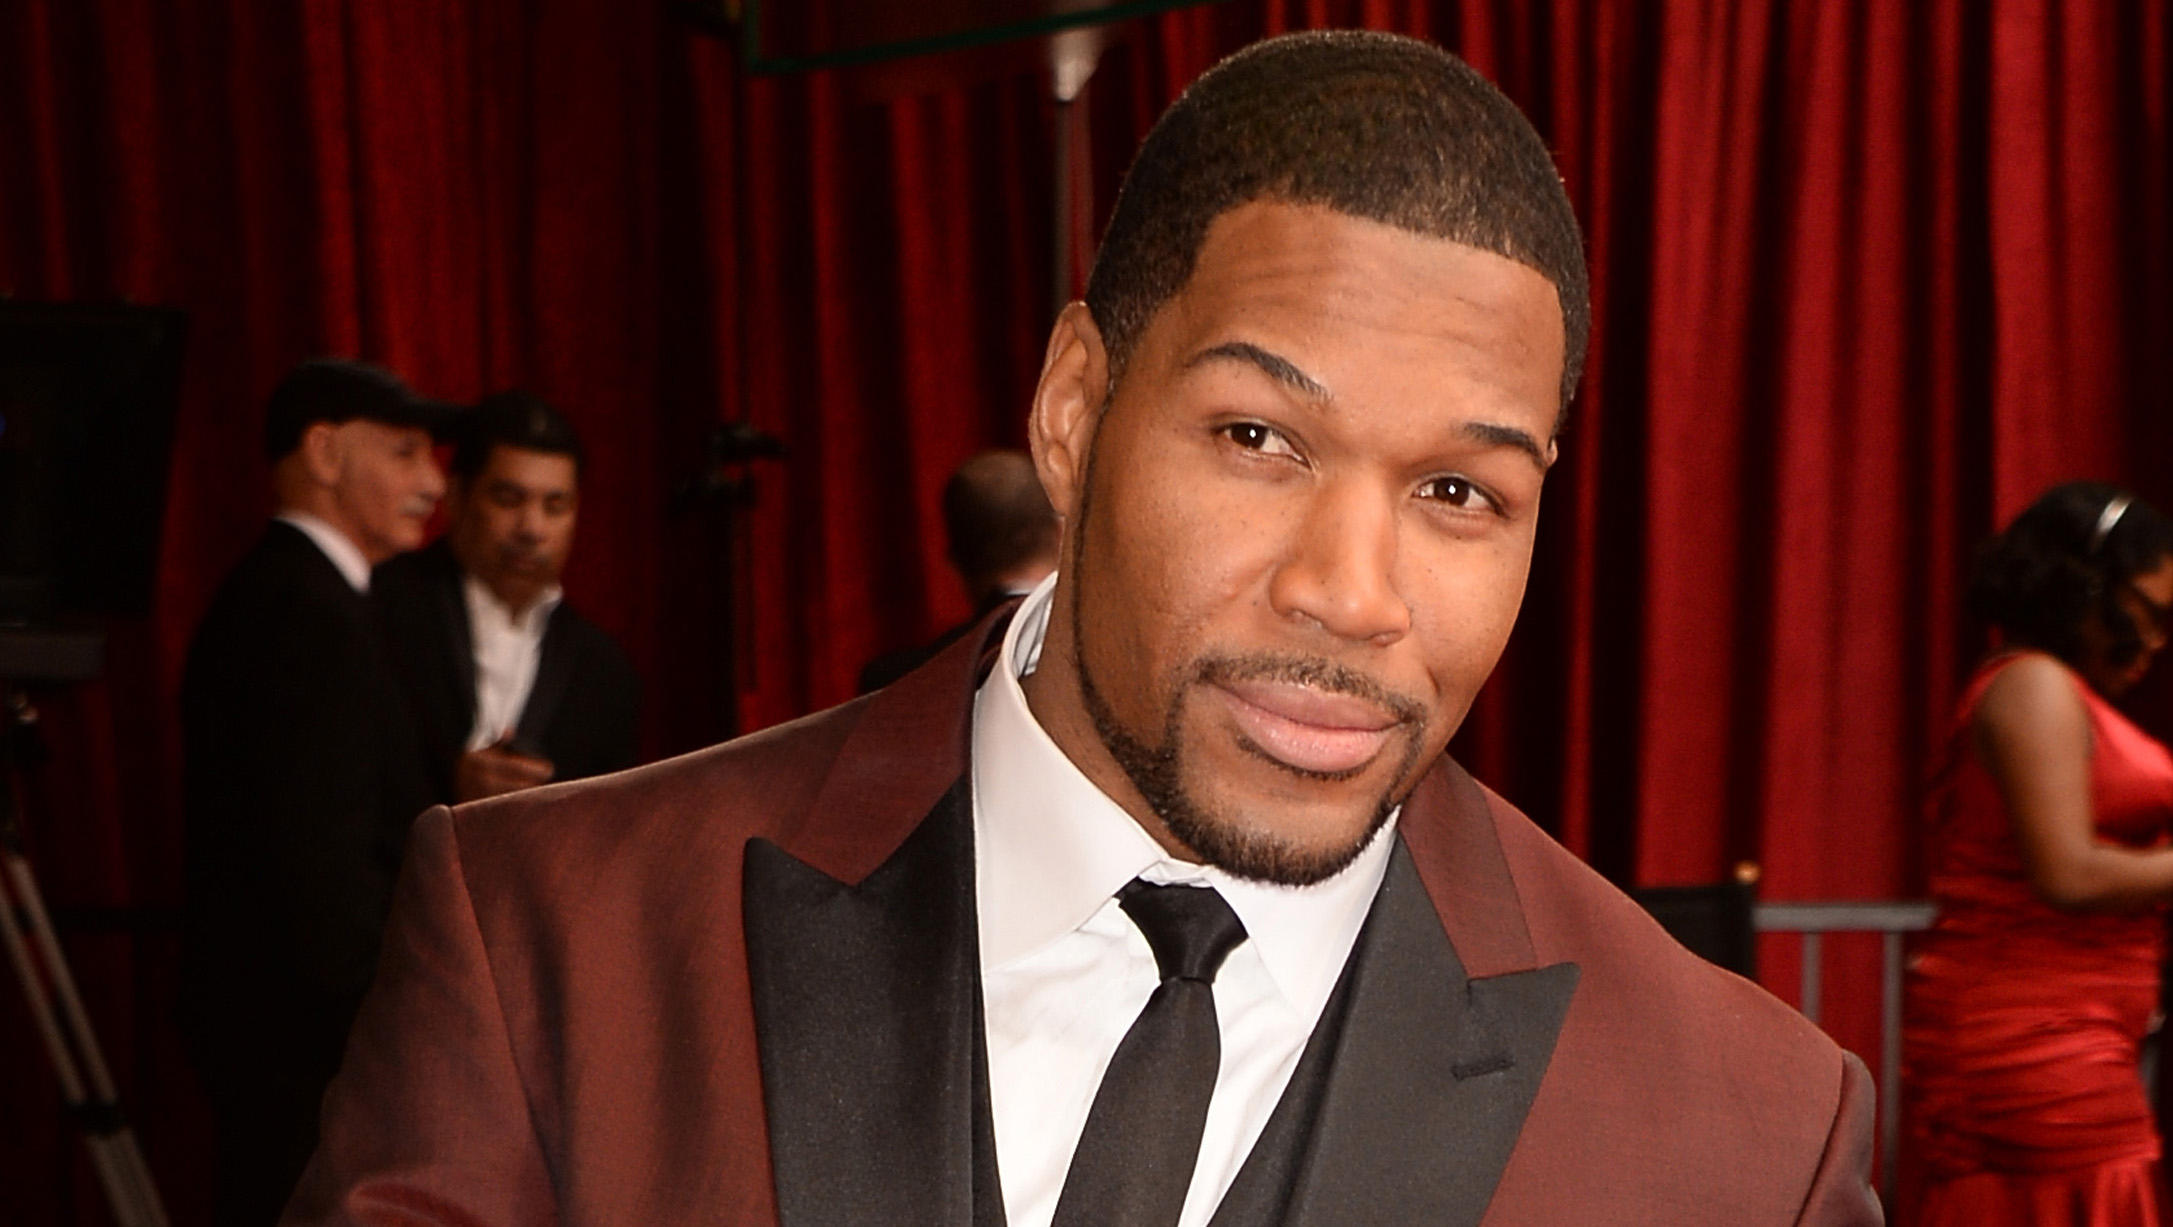 Michael Strahan Expected To Join Good Morning America Cbs News